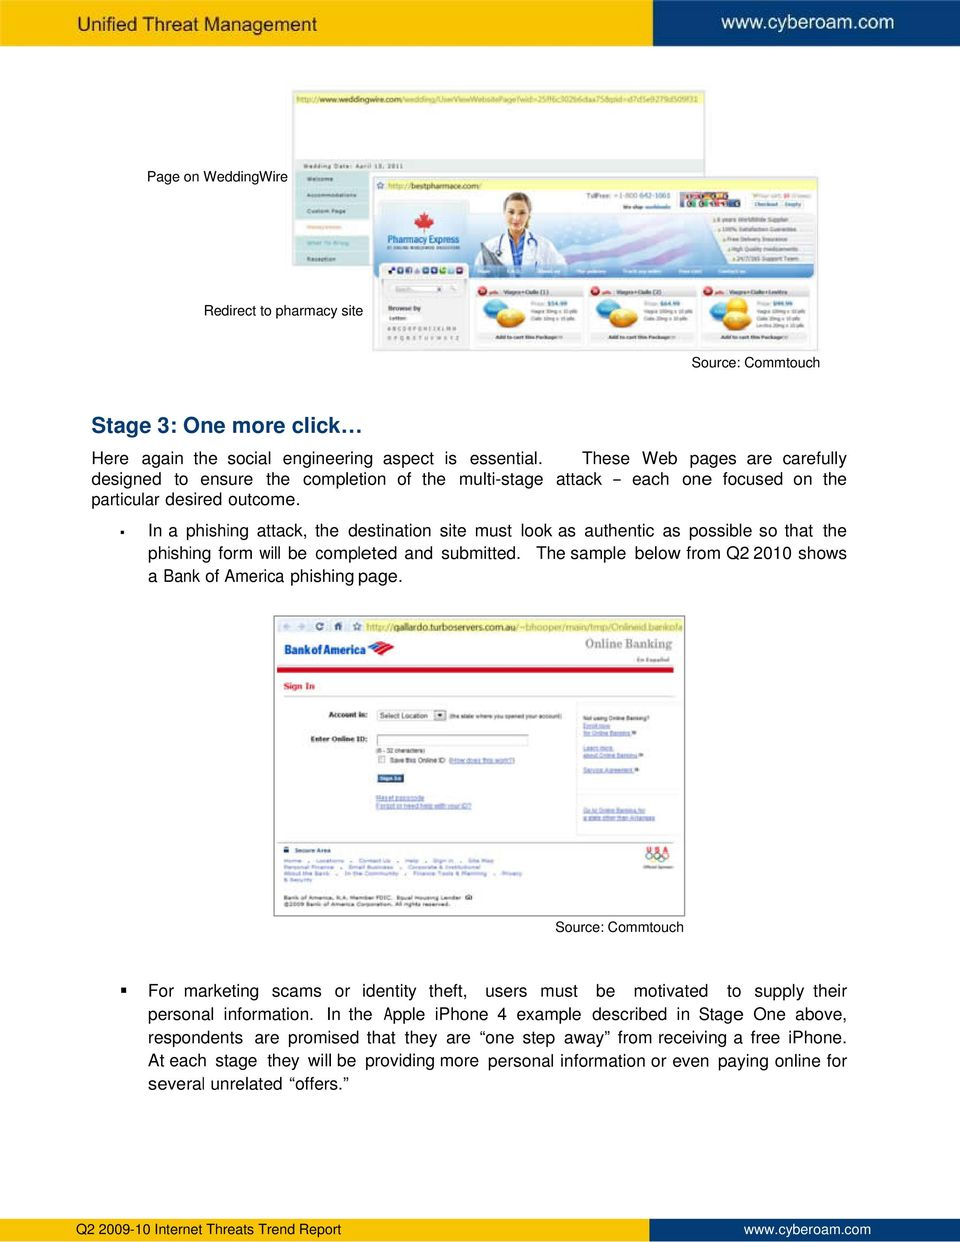 In a phishing attack, the destination site must look as authentic as possible so that the phishing form will be completed and submitted.